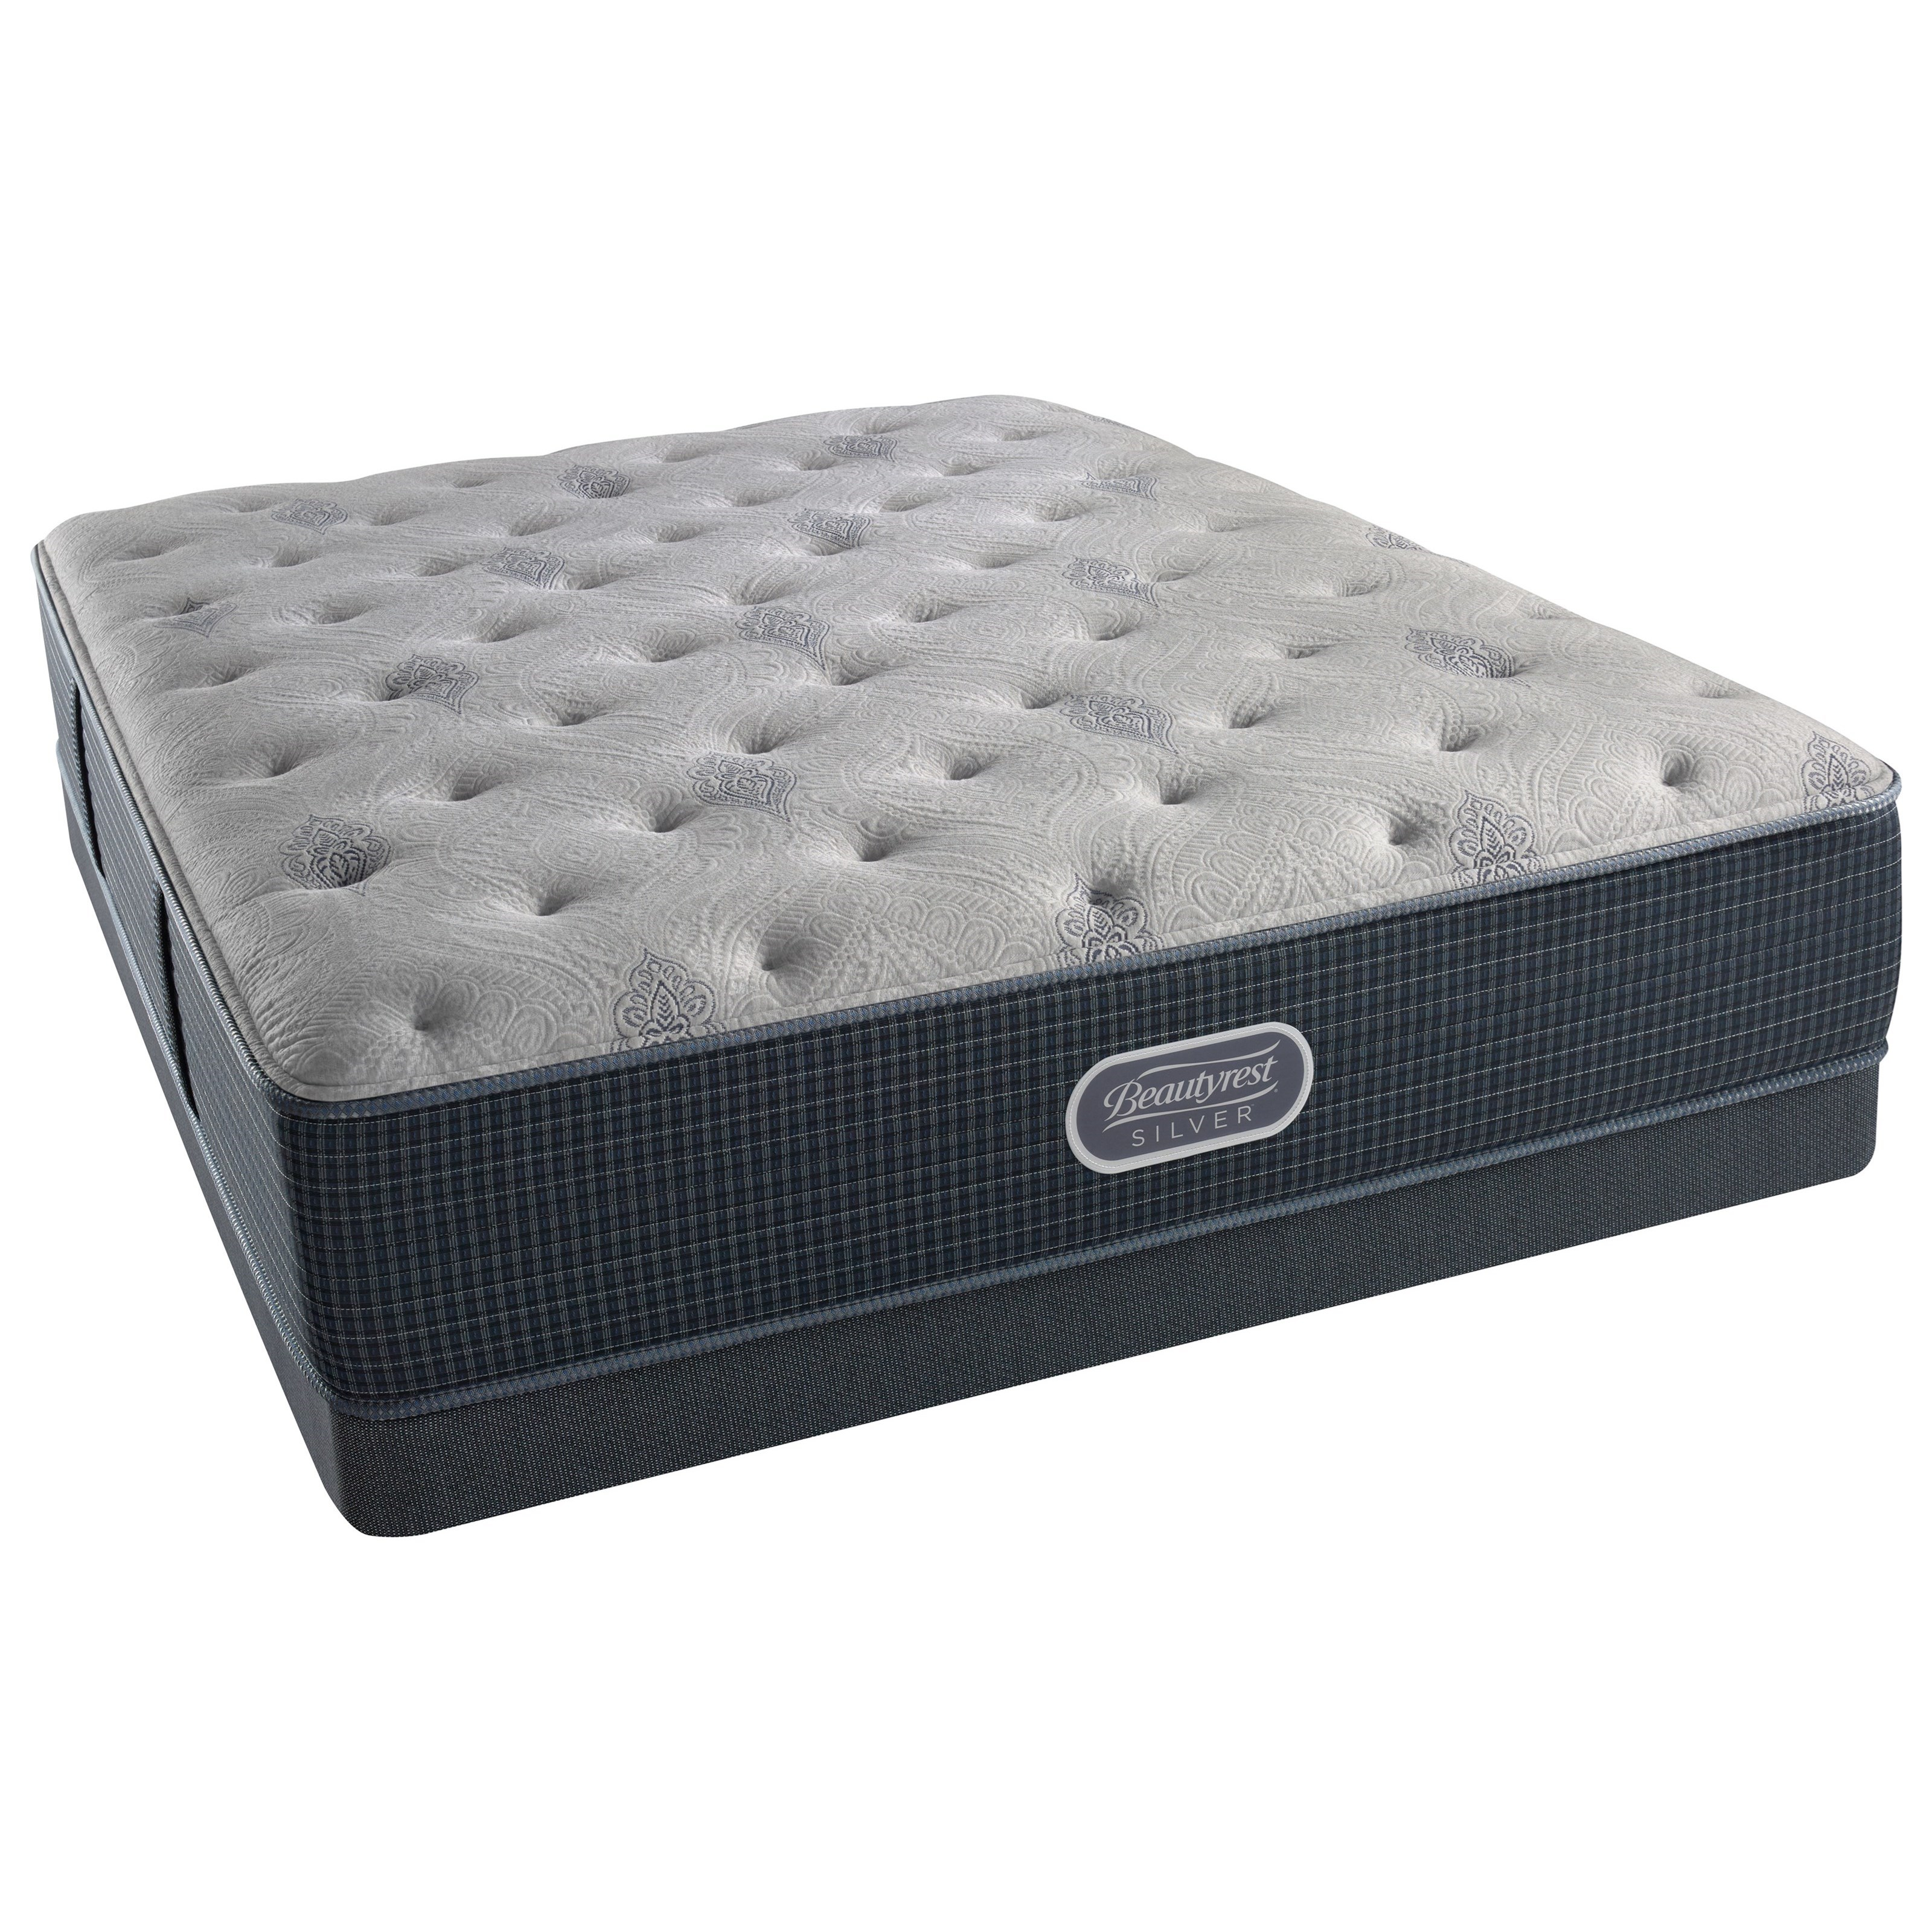 Beautyrest Silver Cal King Low Profile Set